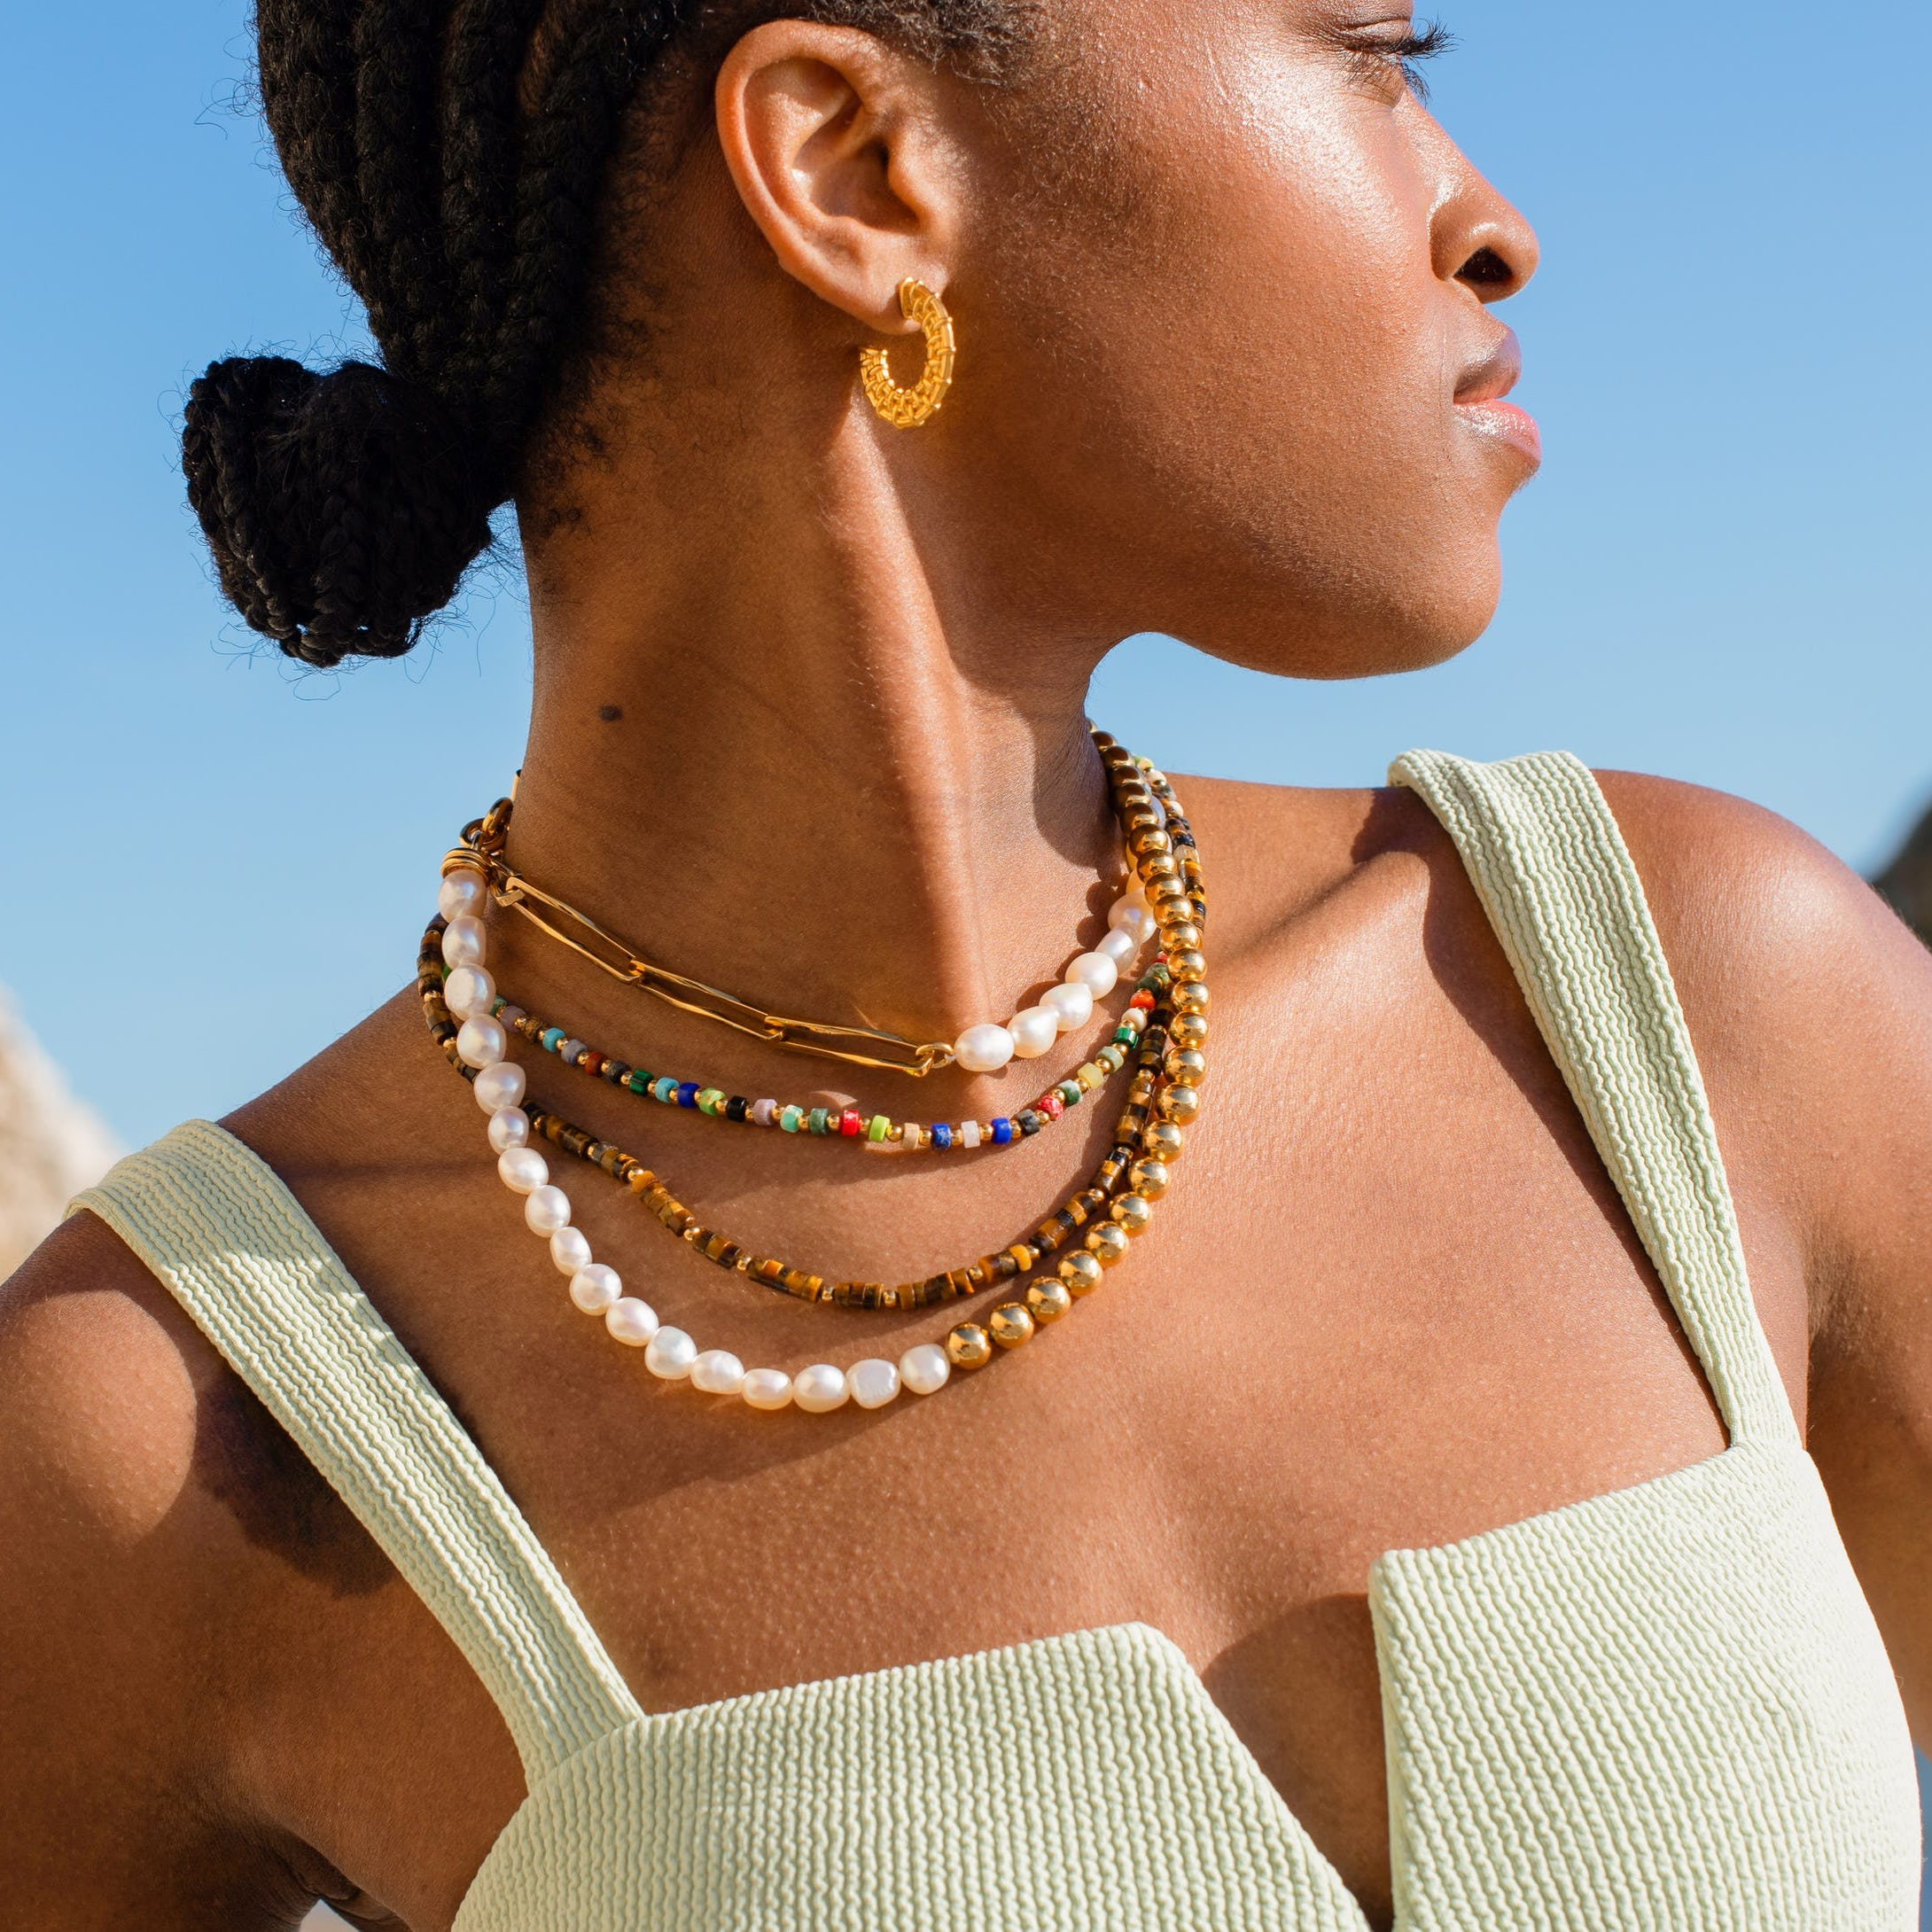 Shop The Maximalist Necklace Everyone's Wearing